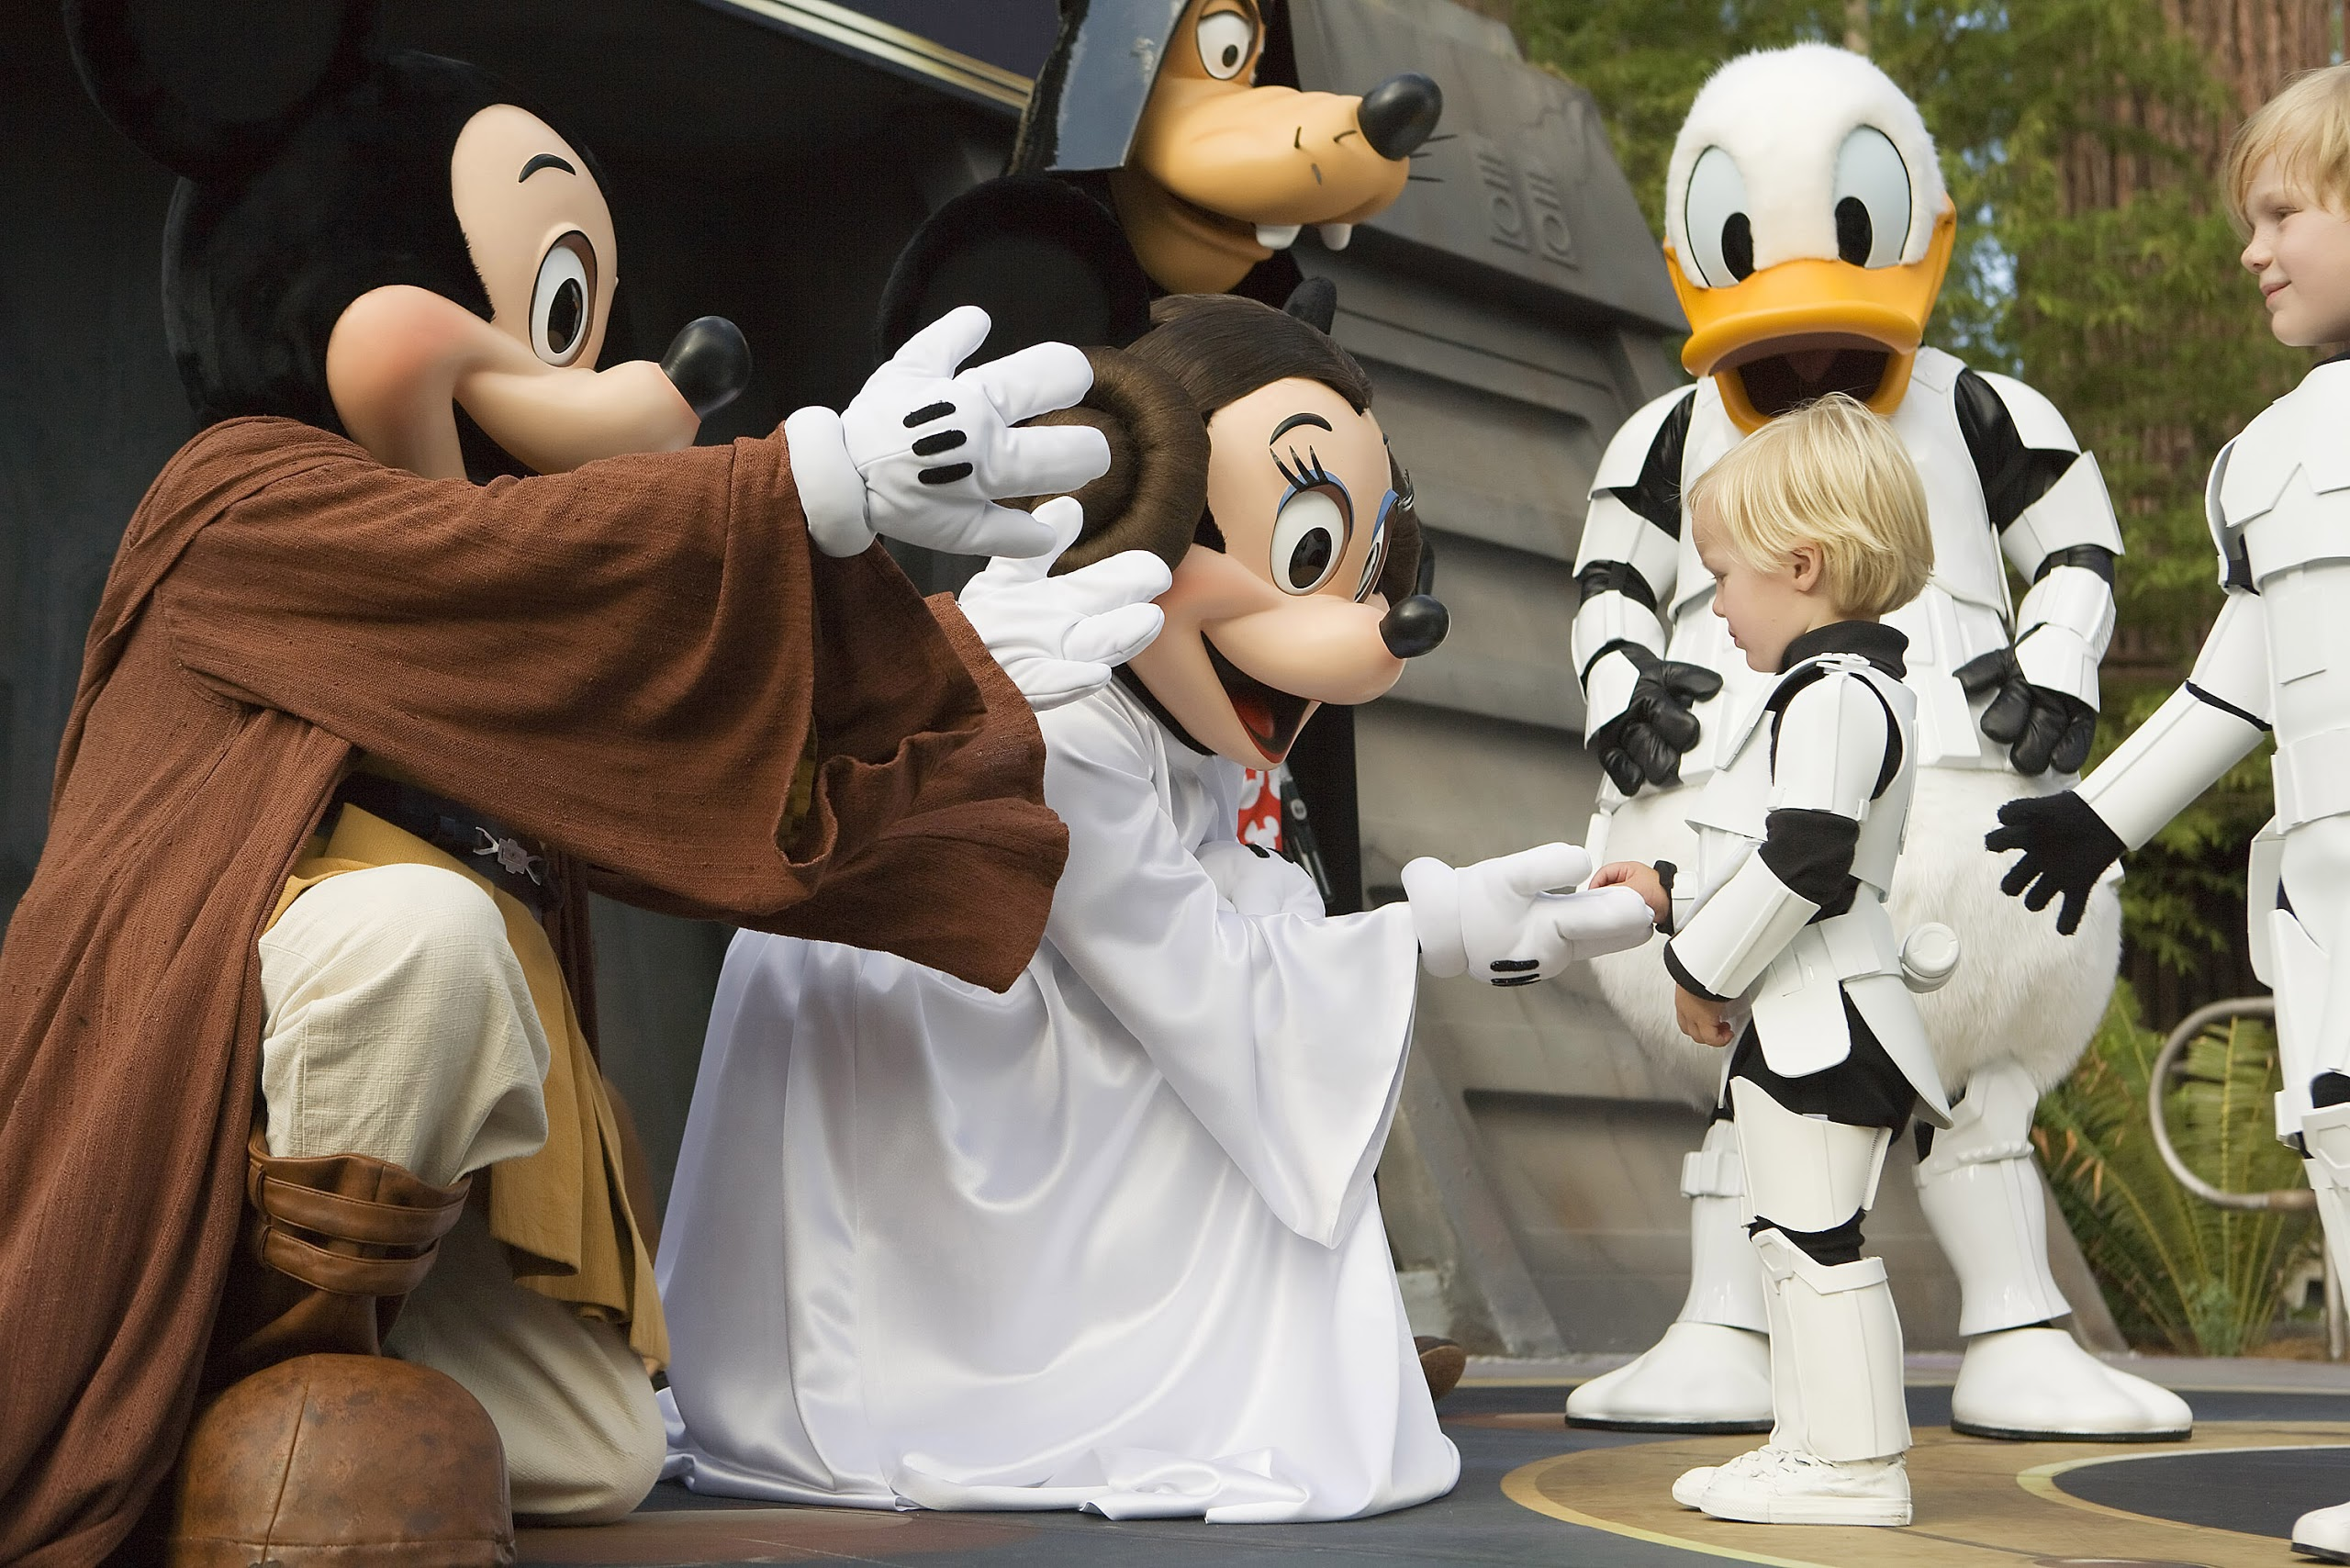 RUMOR: Star Wars Weekends Being Retired, No More Mickey & Friends as Star Wars Characters